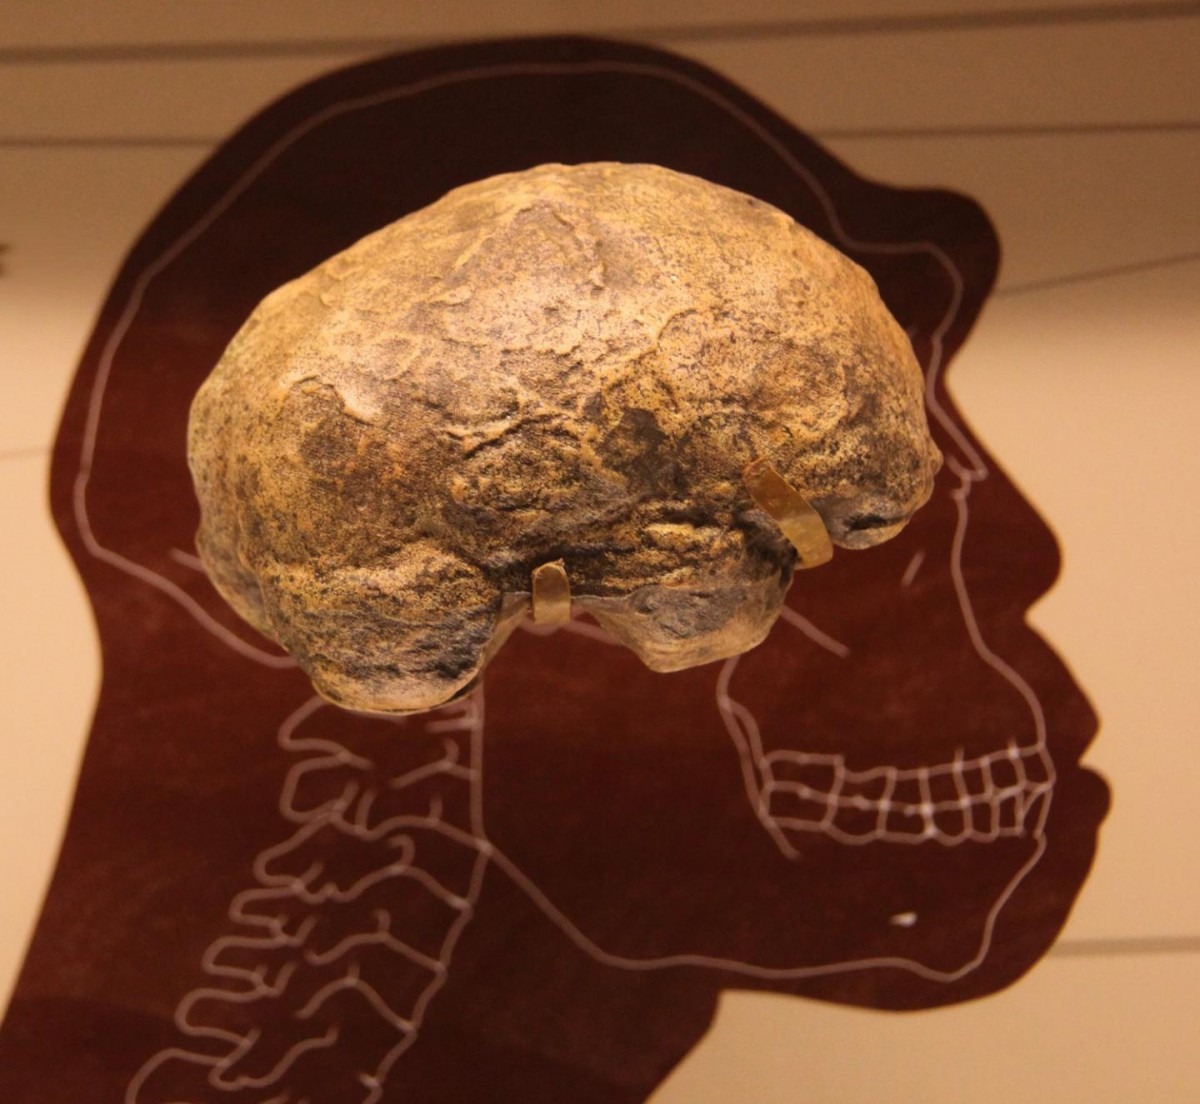 Homo erectus endocast in the Smithsonian Museum of Natural History in Washington, D.C. Under the specifications used, the authors' mathematical model recovered brain sizes matching those of H. erectus. Credit: Tim Evanson, CC-BY-SA